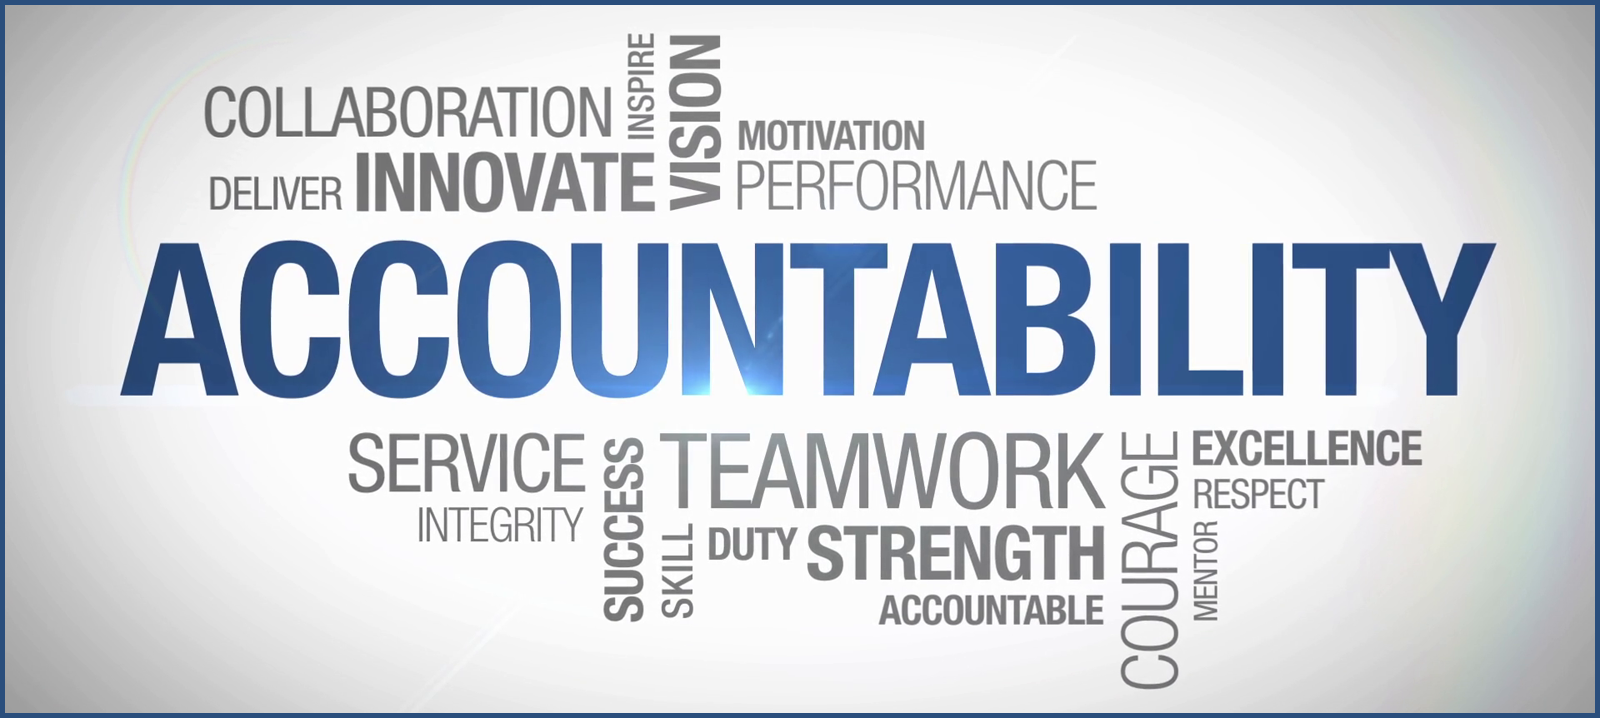 Accountability: Critical For Achieving Successful Results